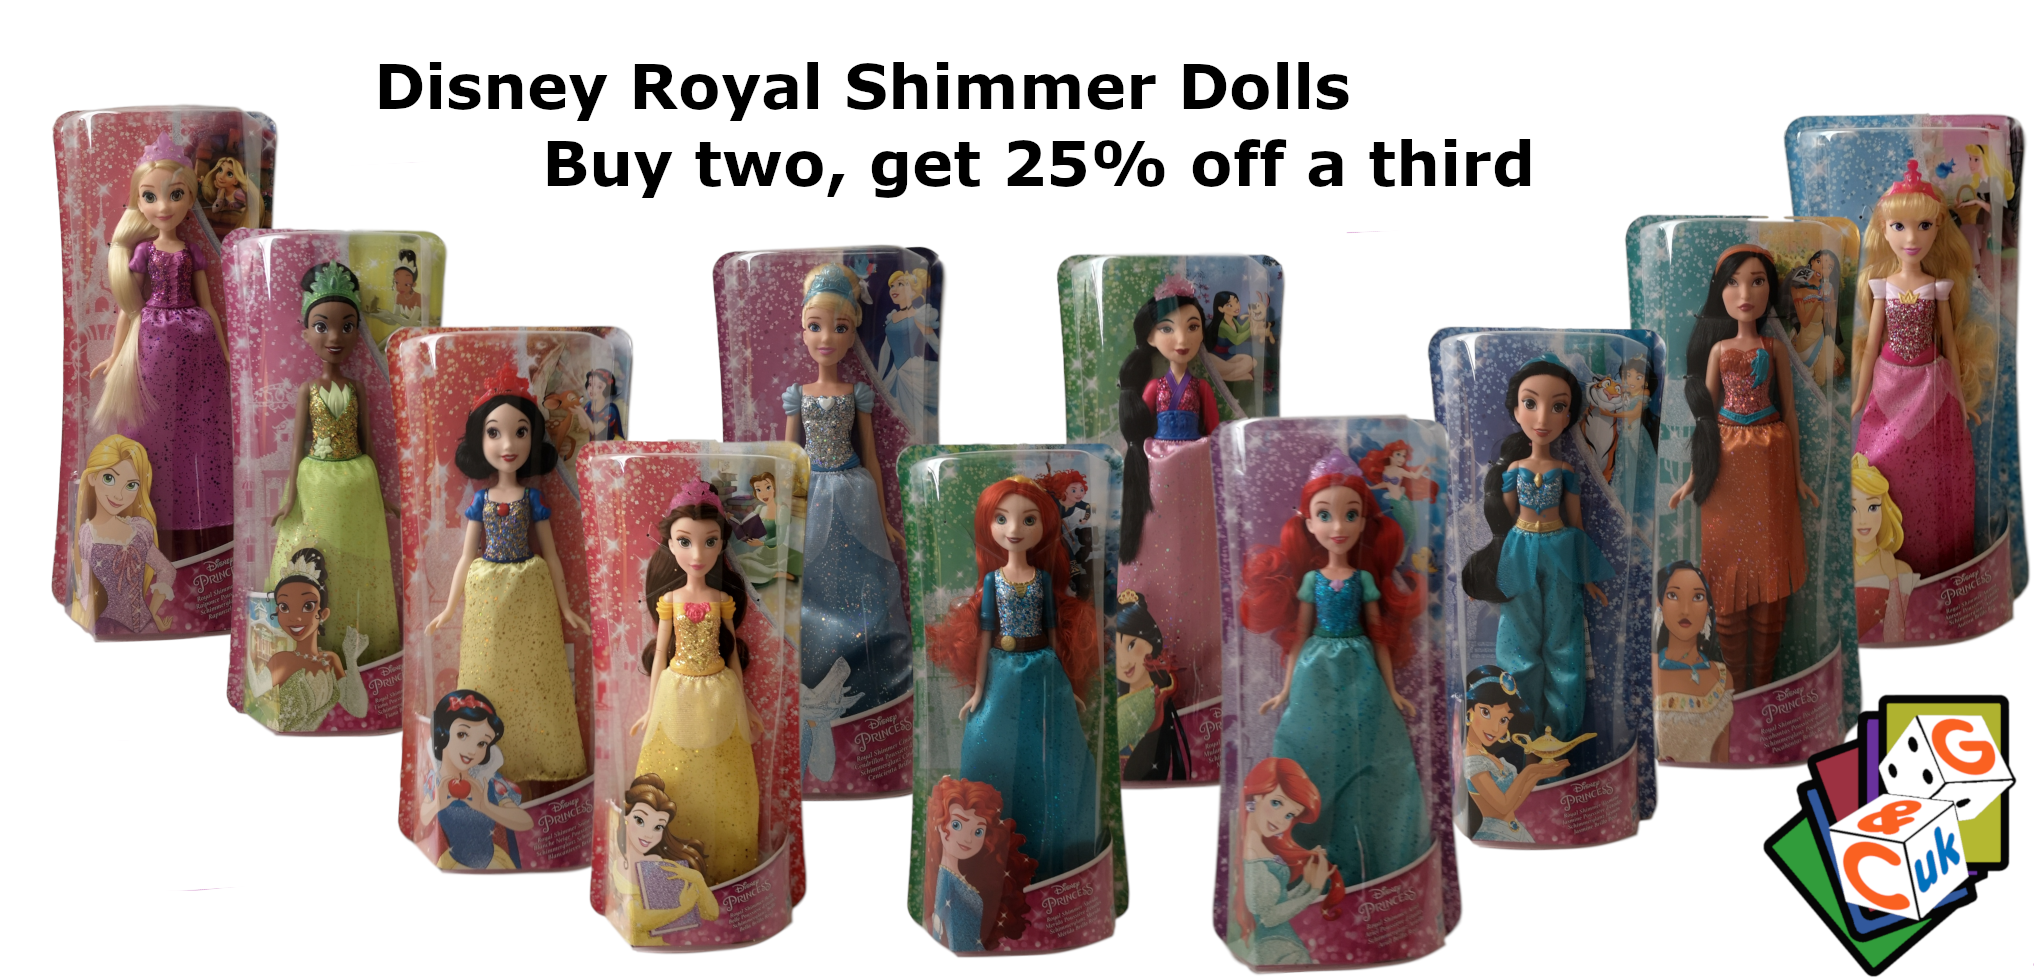 Disney Royal Shimmer Princesses Offer - Buy two, get 25% off a third